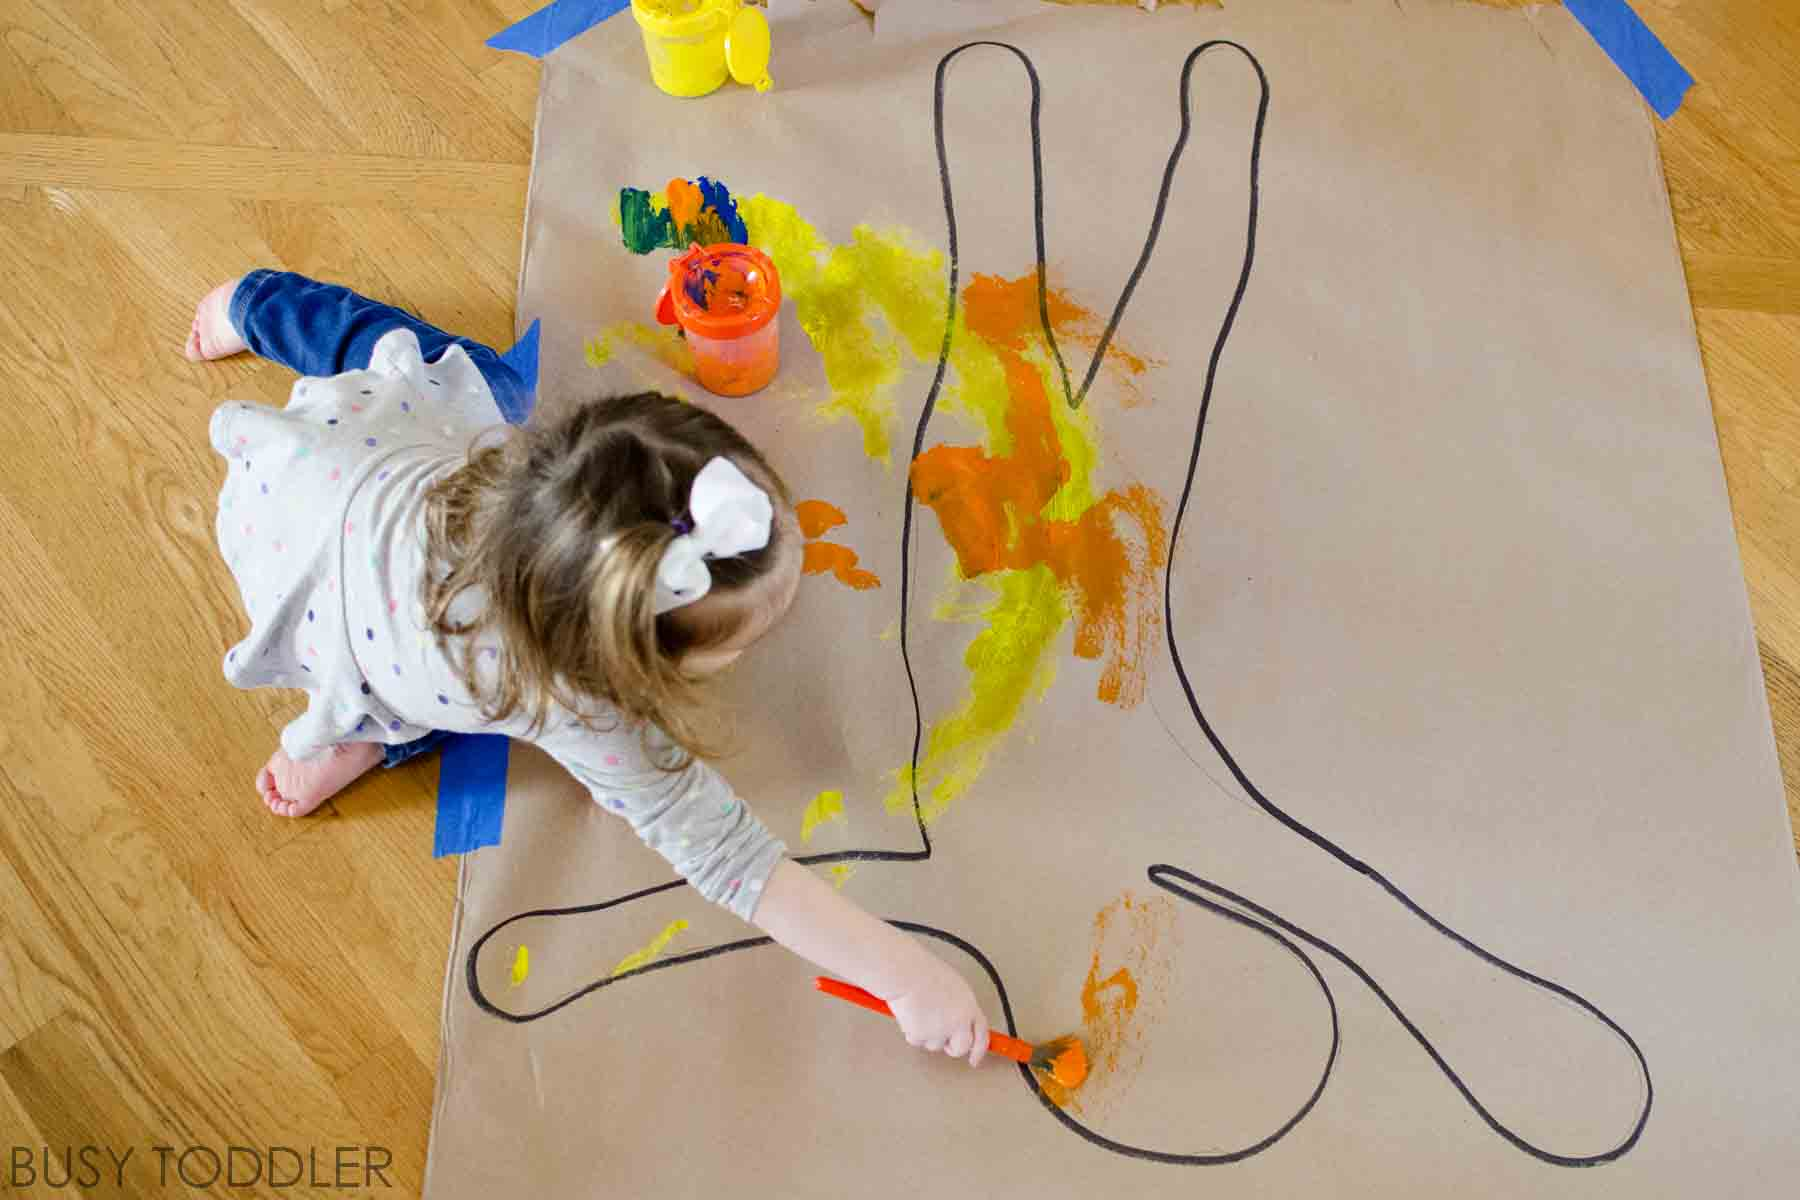 BODY PAINT: A fun process art activity that's perfect for toddlers, preschoolers and kids. Such a perfect indoor activity on a rainy day. This easy indoor activity is so much fun!